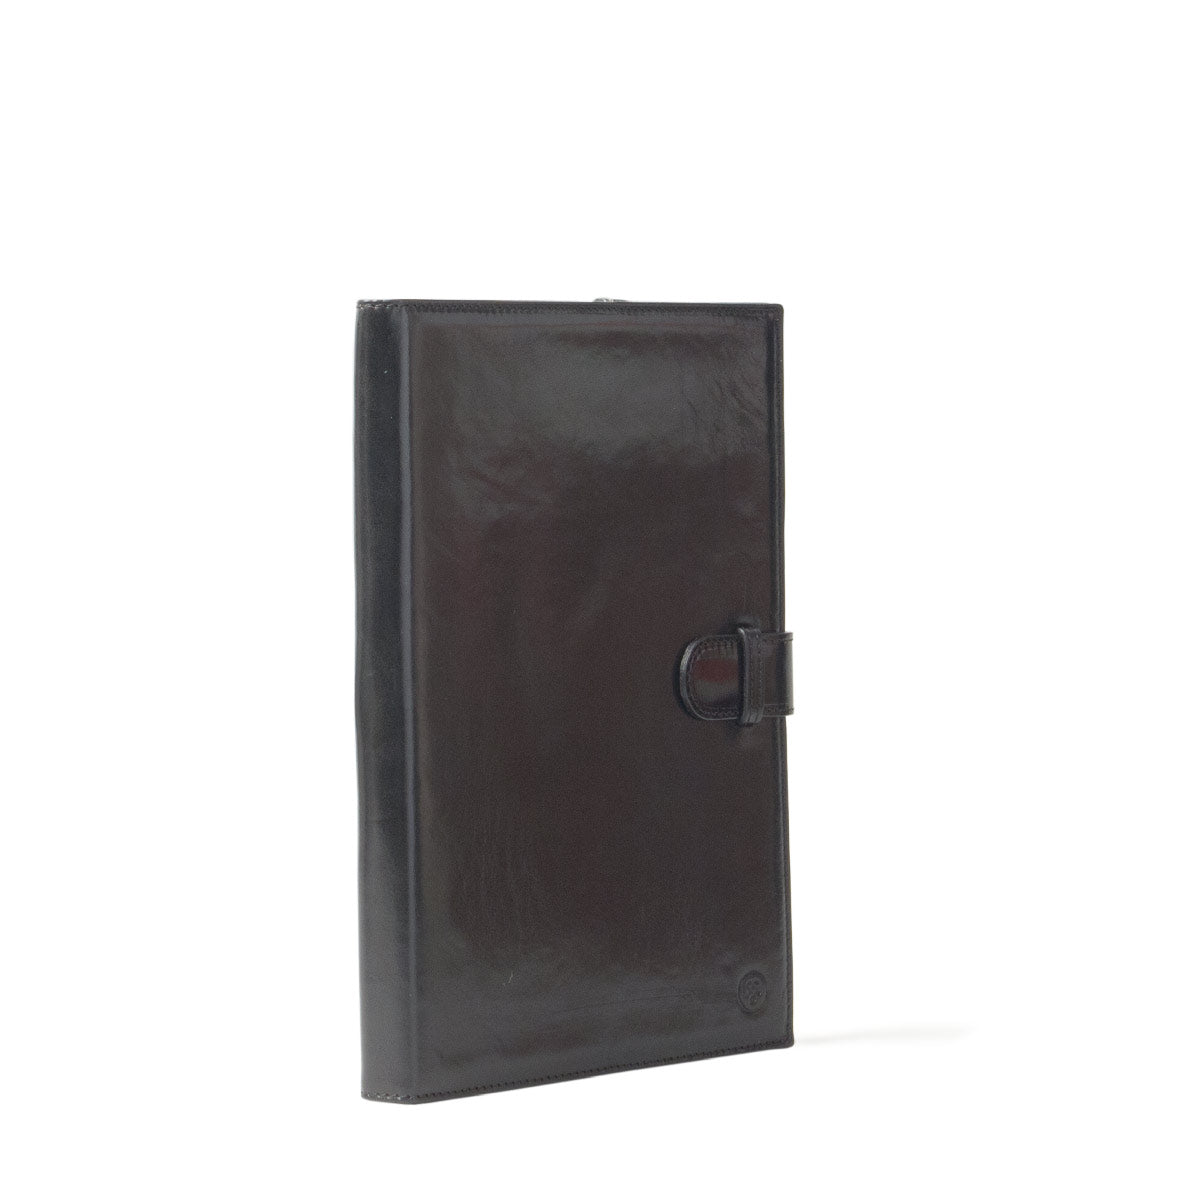 Image 2 of the 'Gallo' Black Veg-Tanned Leather Prestige Business Folder